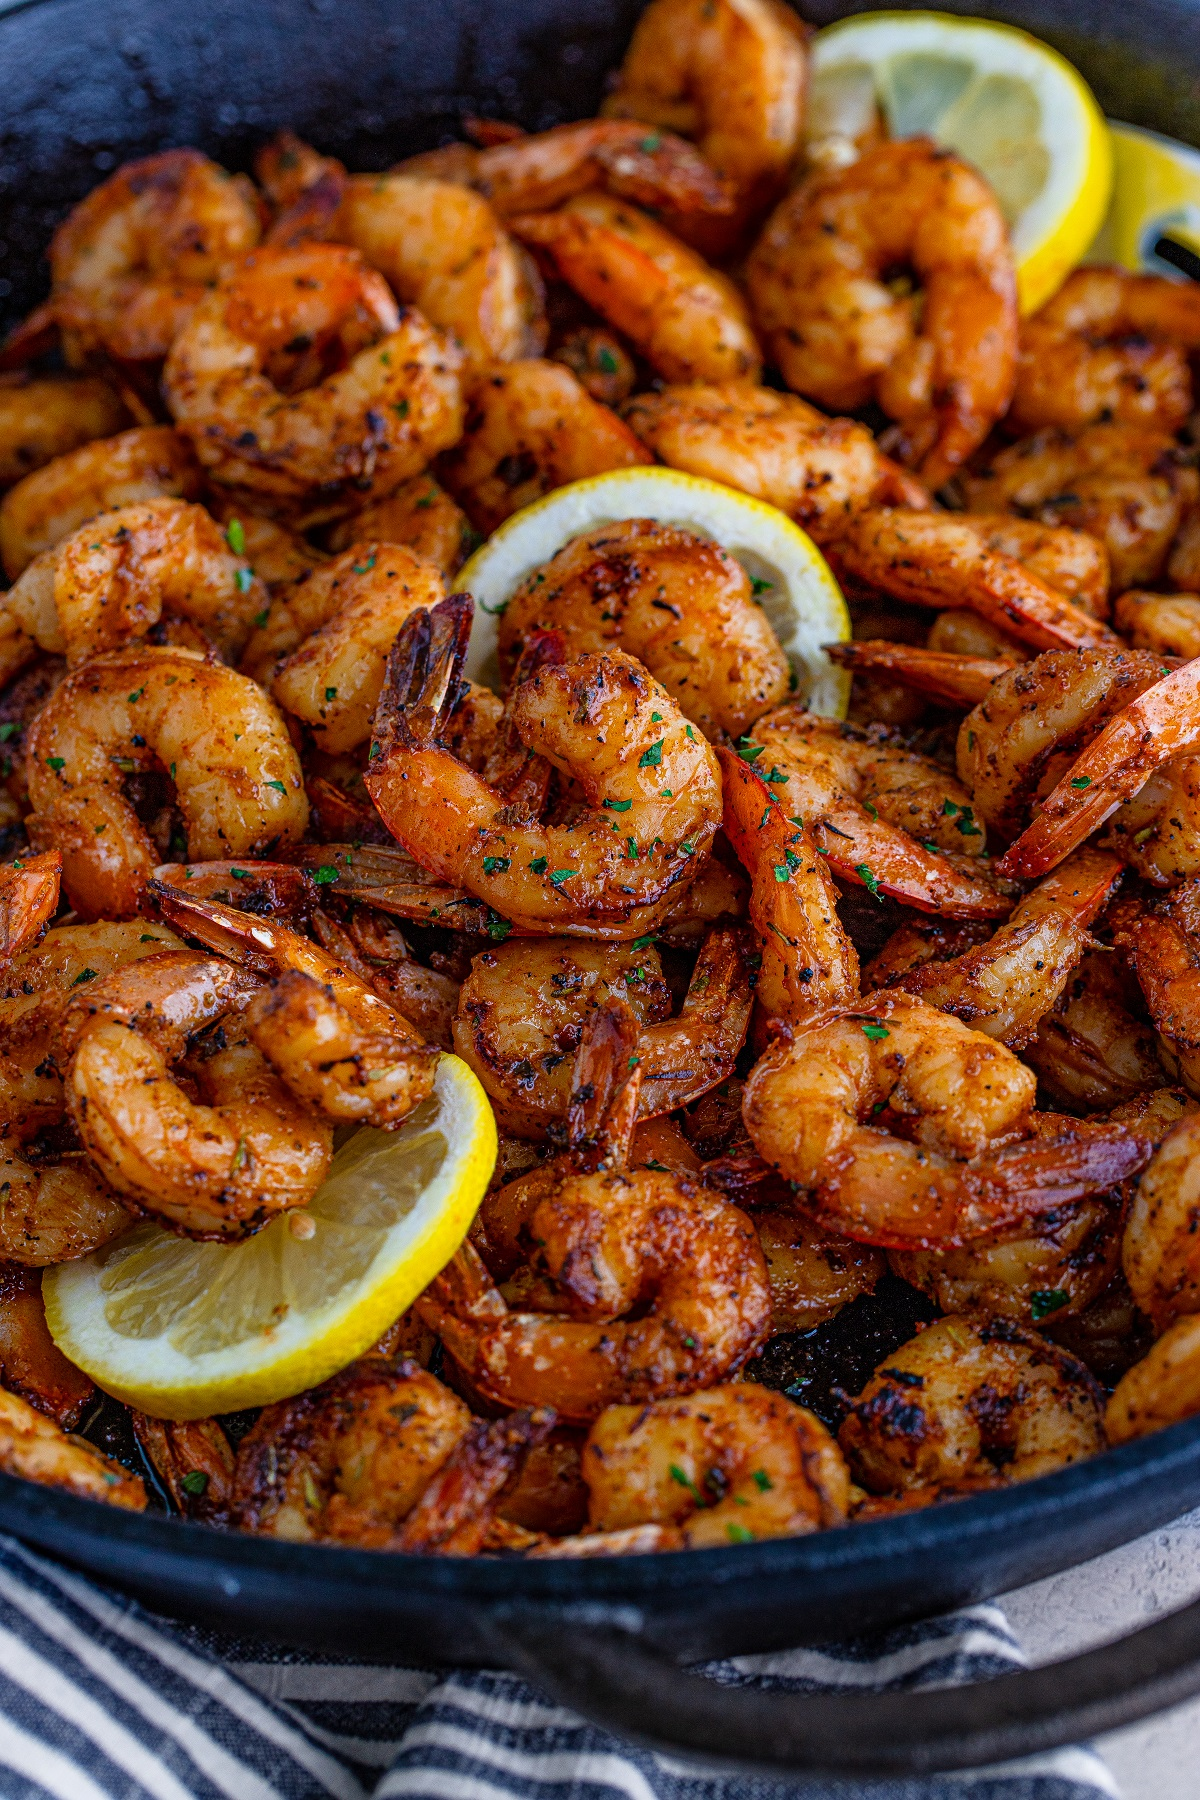 Blackened shrimp in a cast-iron pan with slices of lemon on a blue and white towel